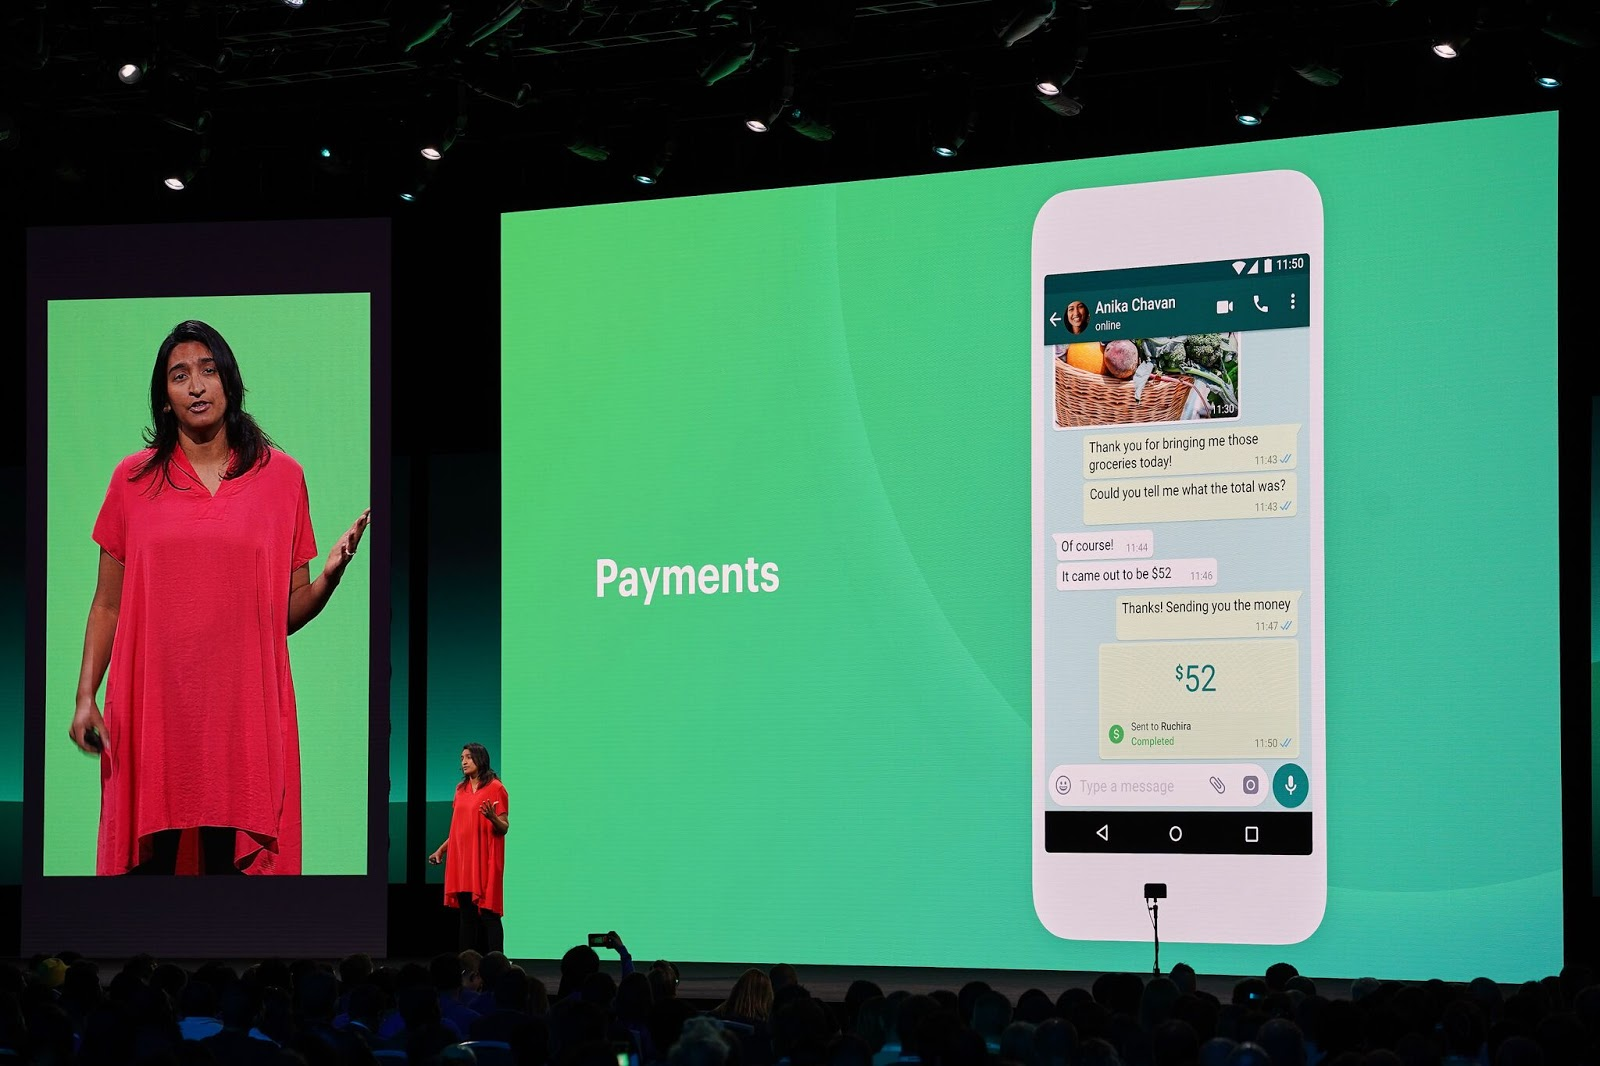 WhatsApp gets new features including Product Catalogs / Digital Information  World